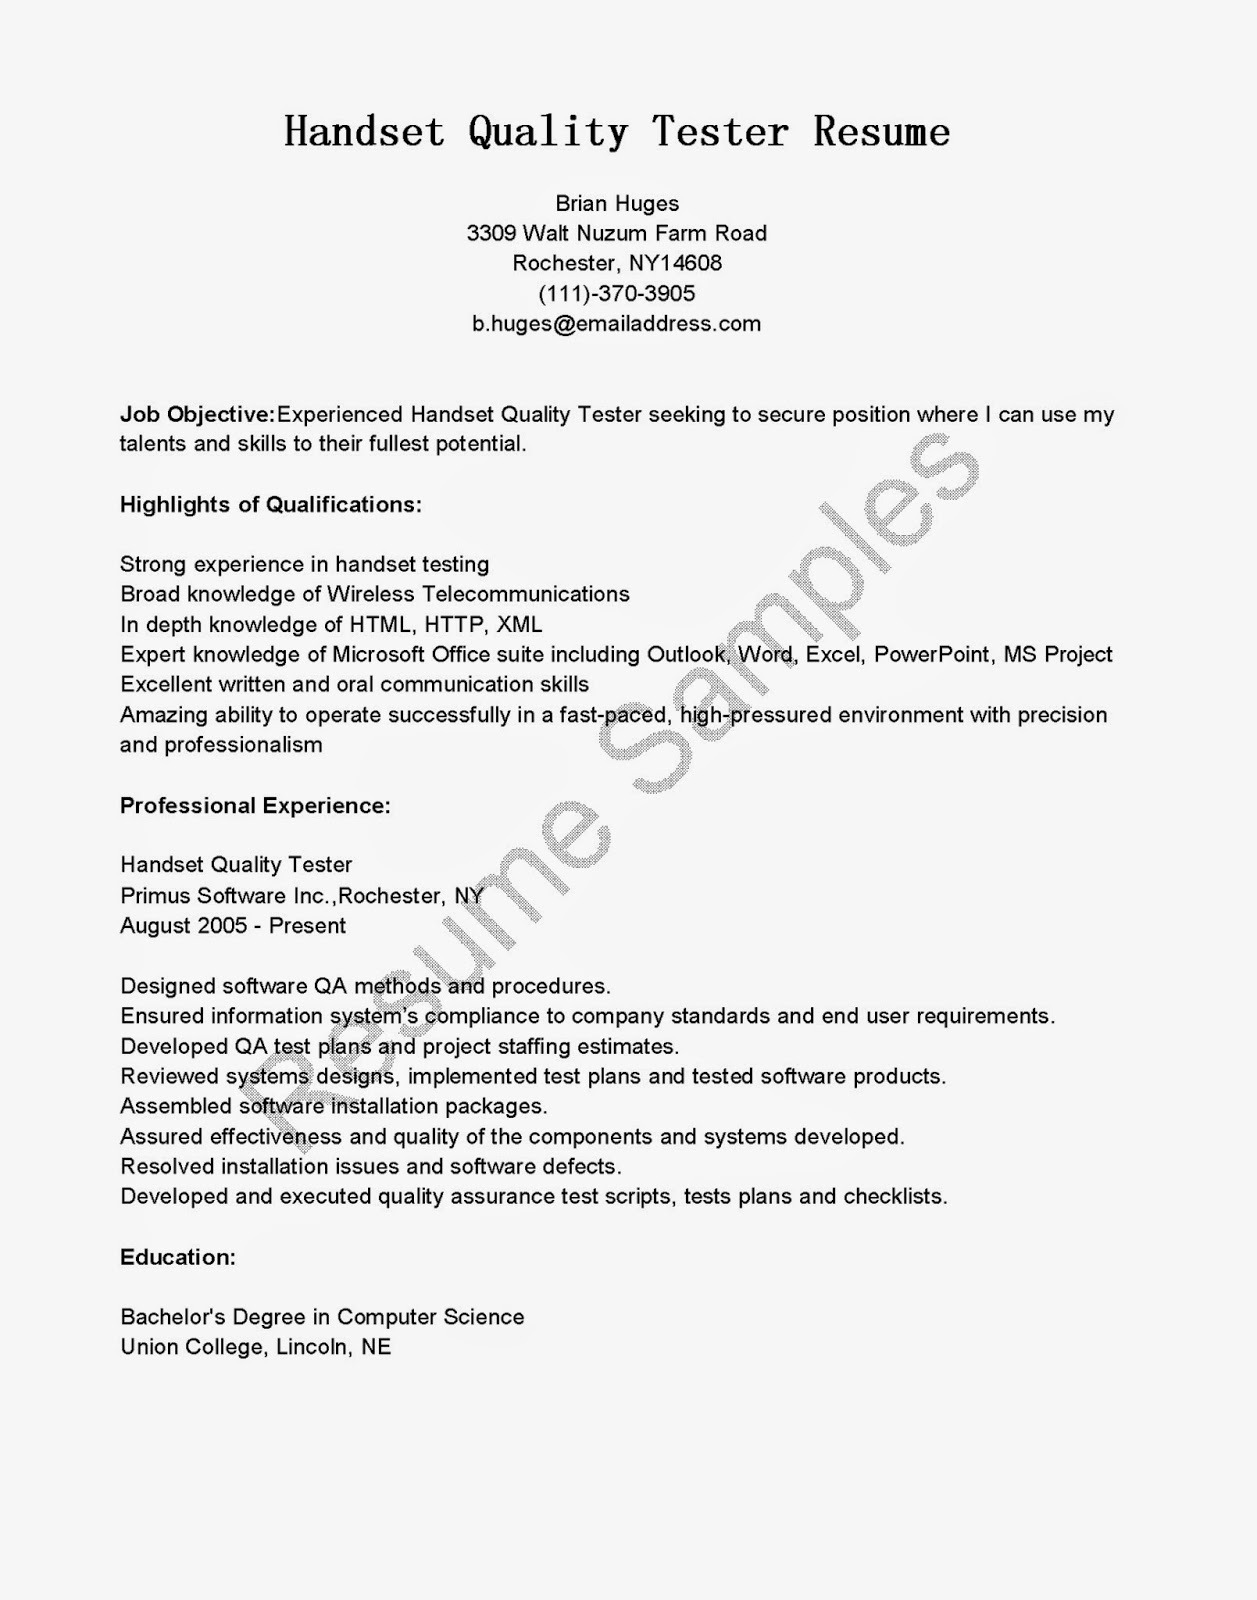 Banquet Manager Resume Fast Food Restaurant Manager Resume Sample Eps Zp  Cover Letter Samples  Banquet Manager Resume